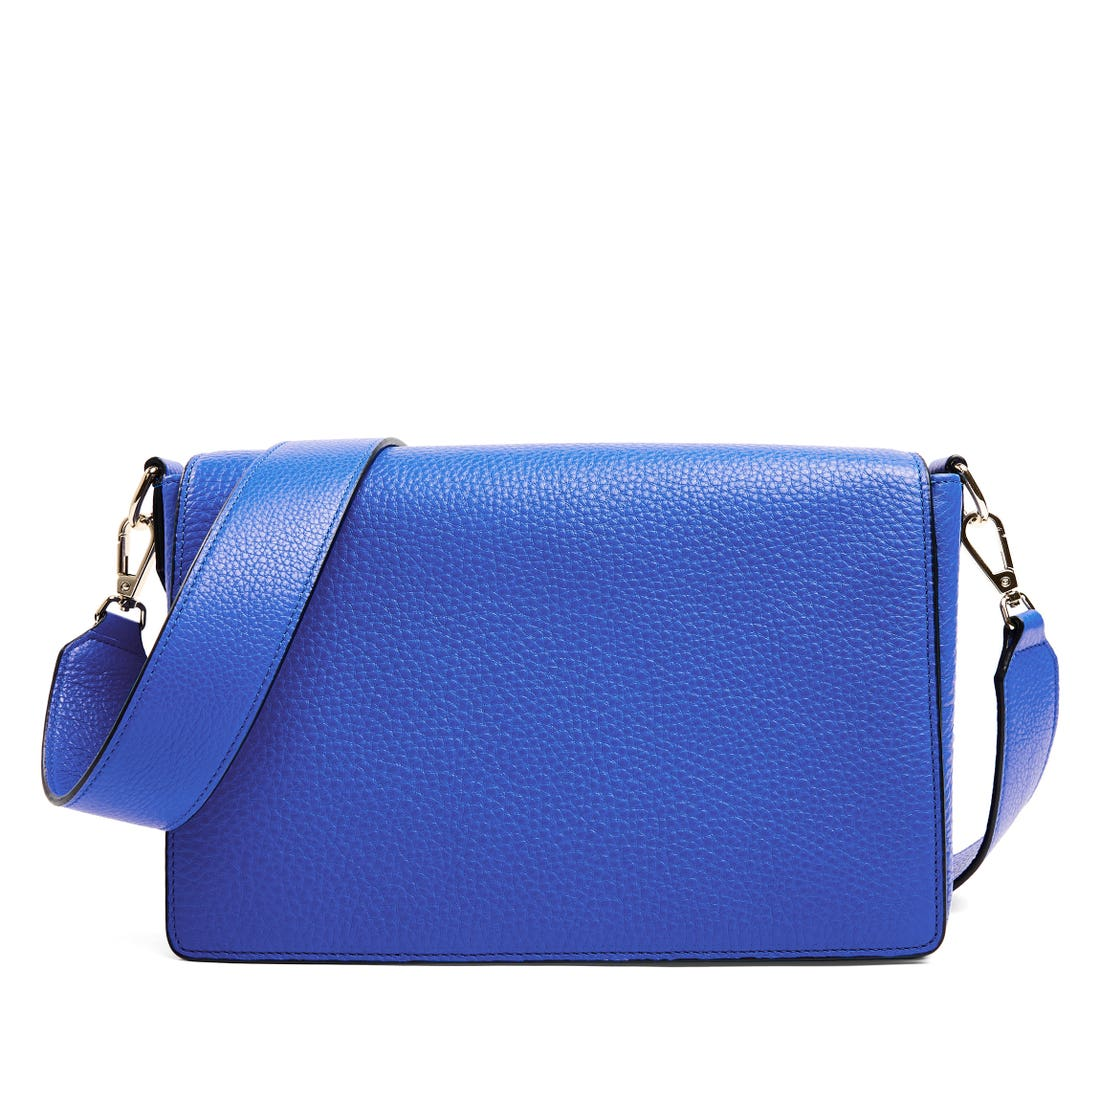 Medium Addison Crossbody Bag